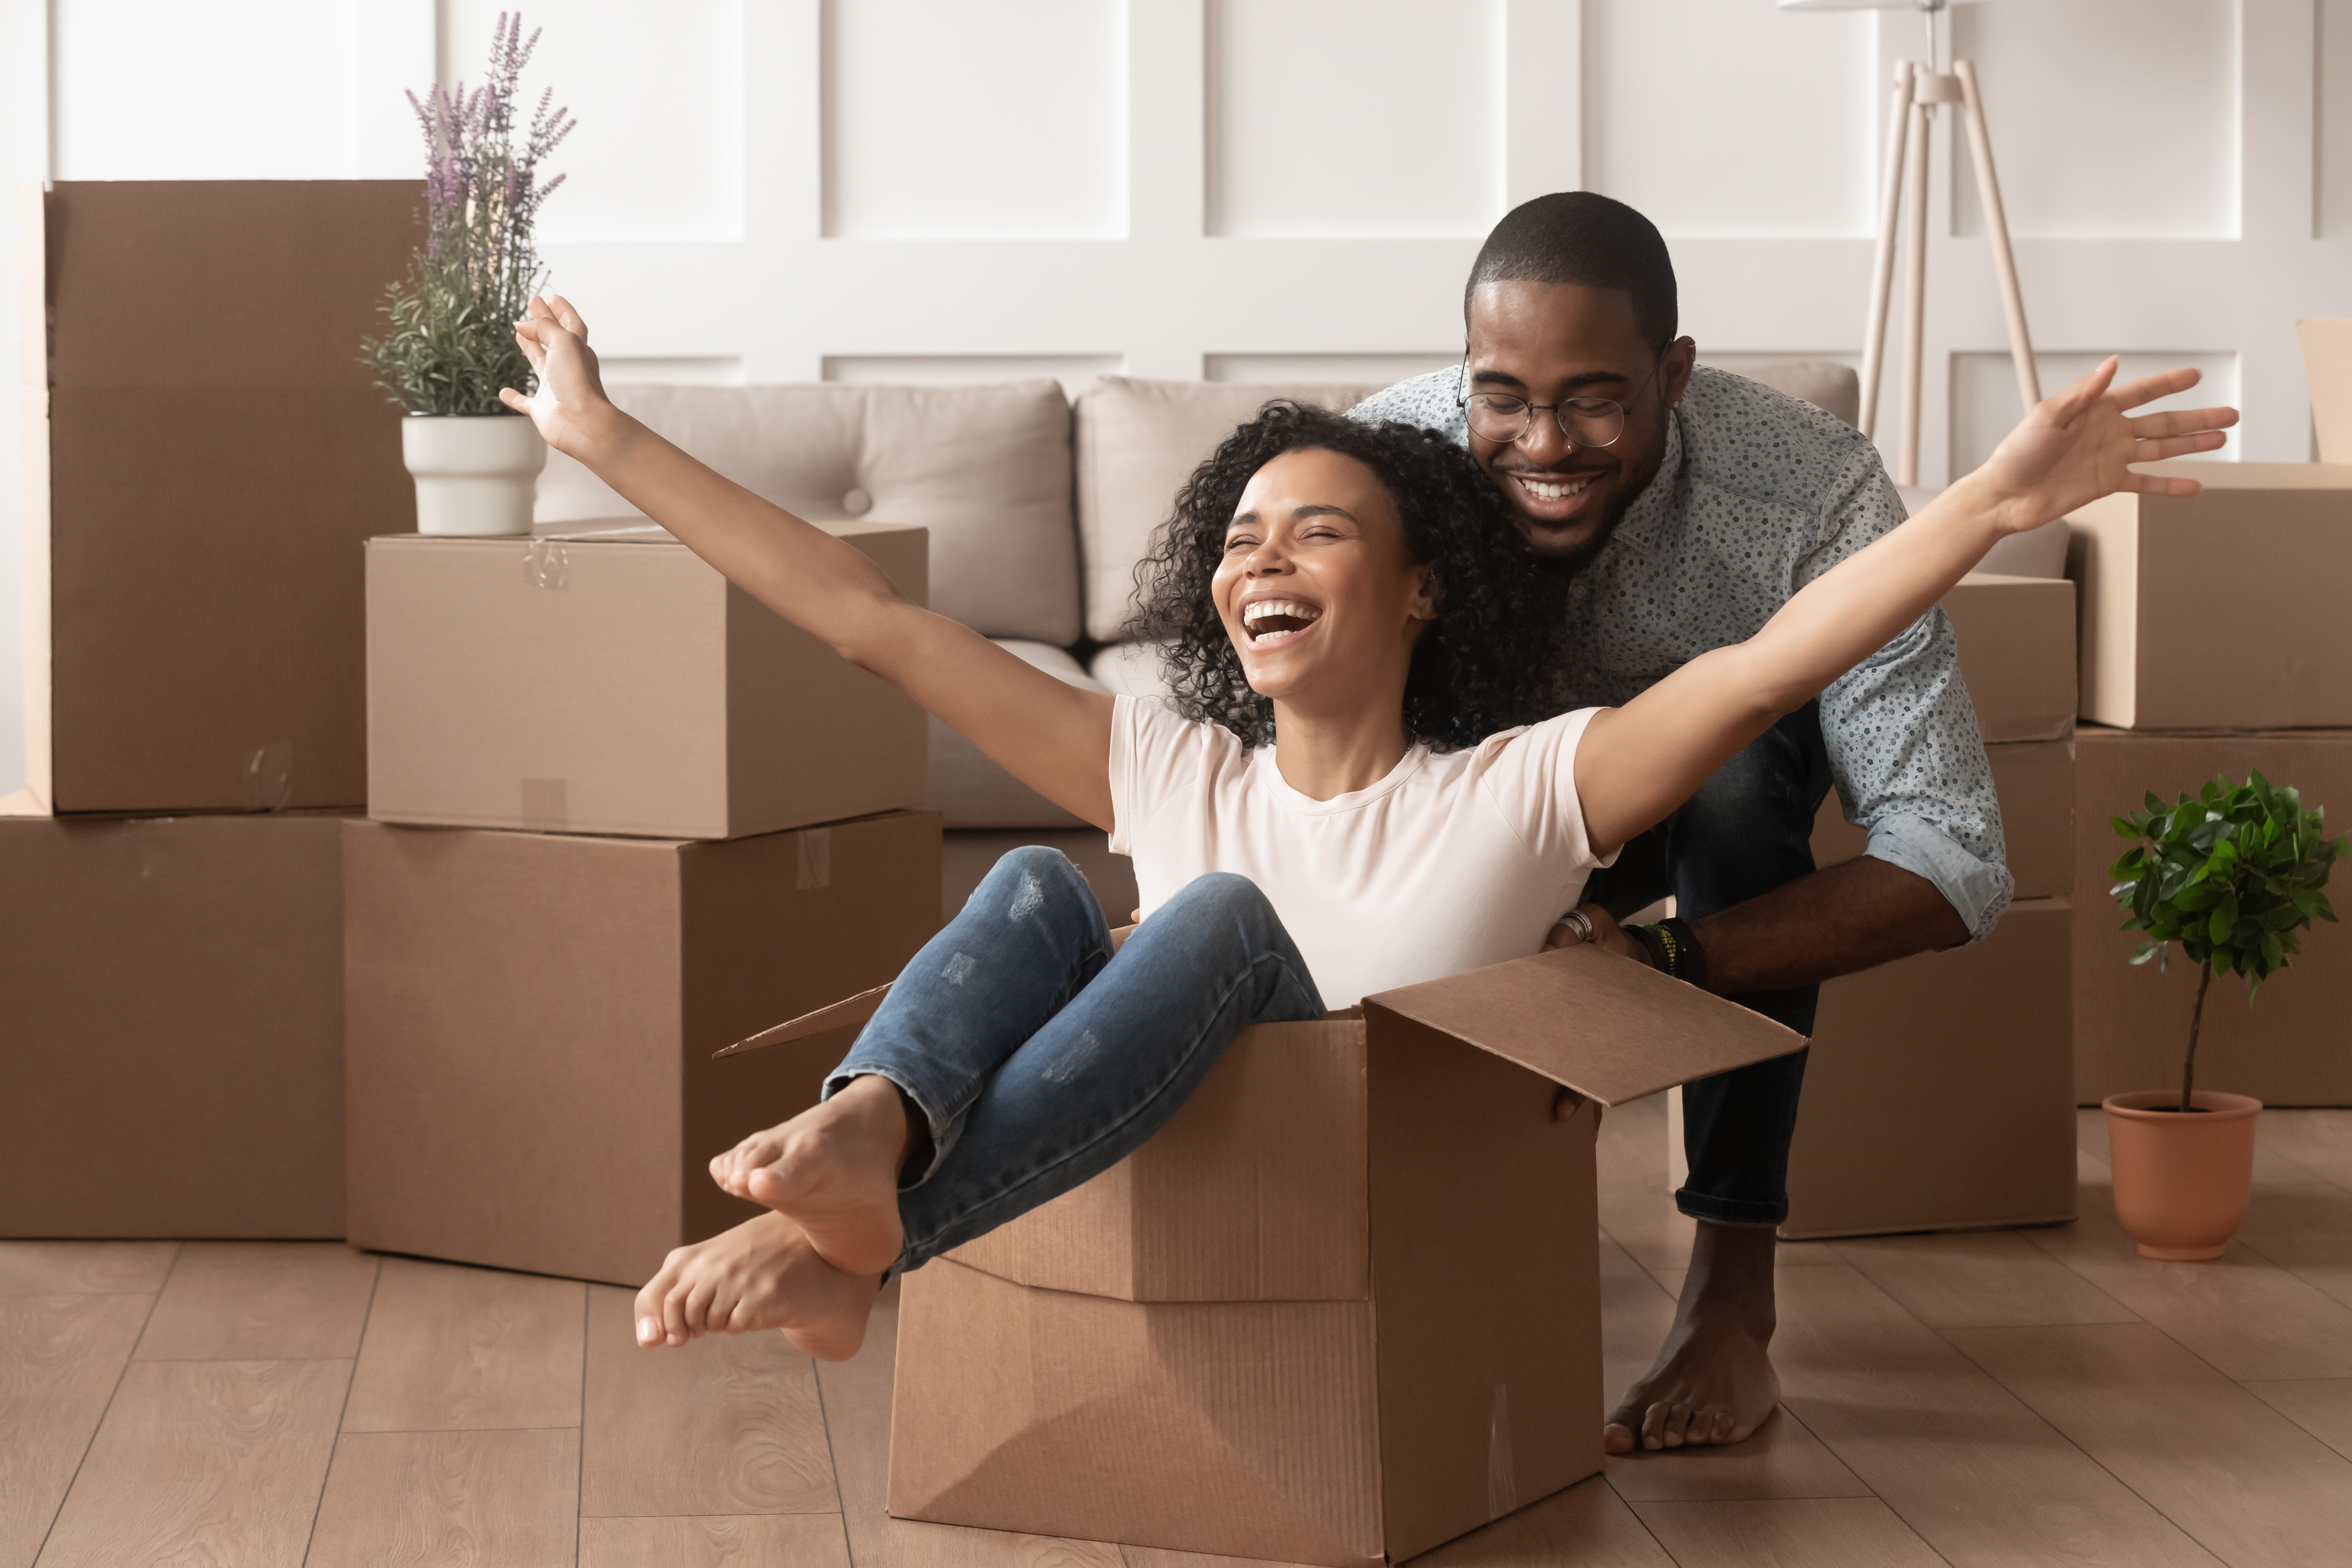 with mortgage rates at less than 4%, real estate brokers say it's a great time to go home shopping.